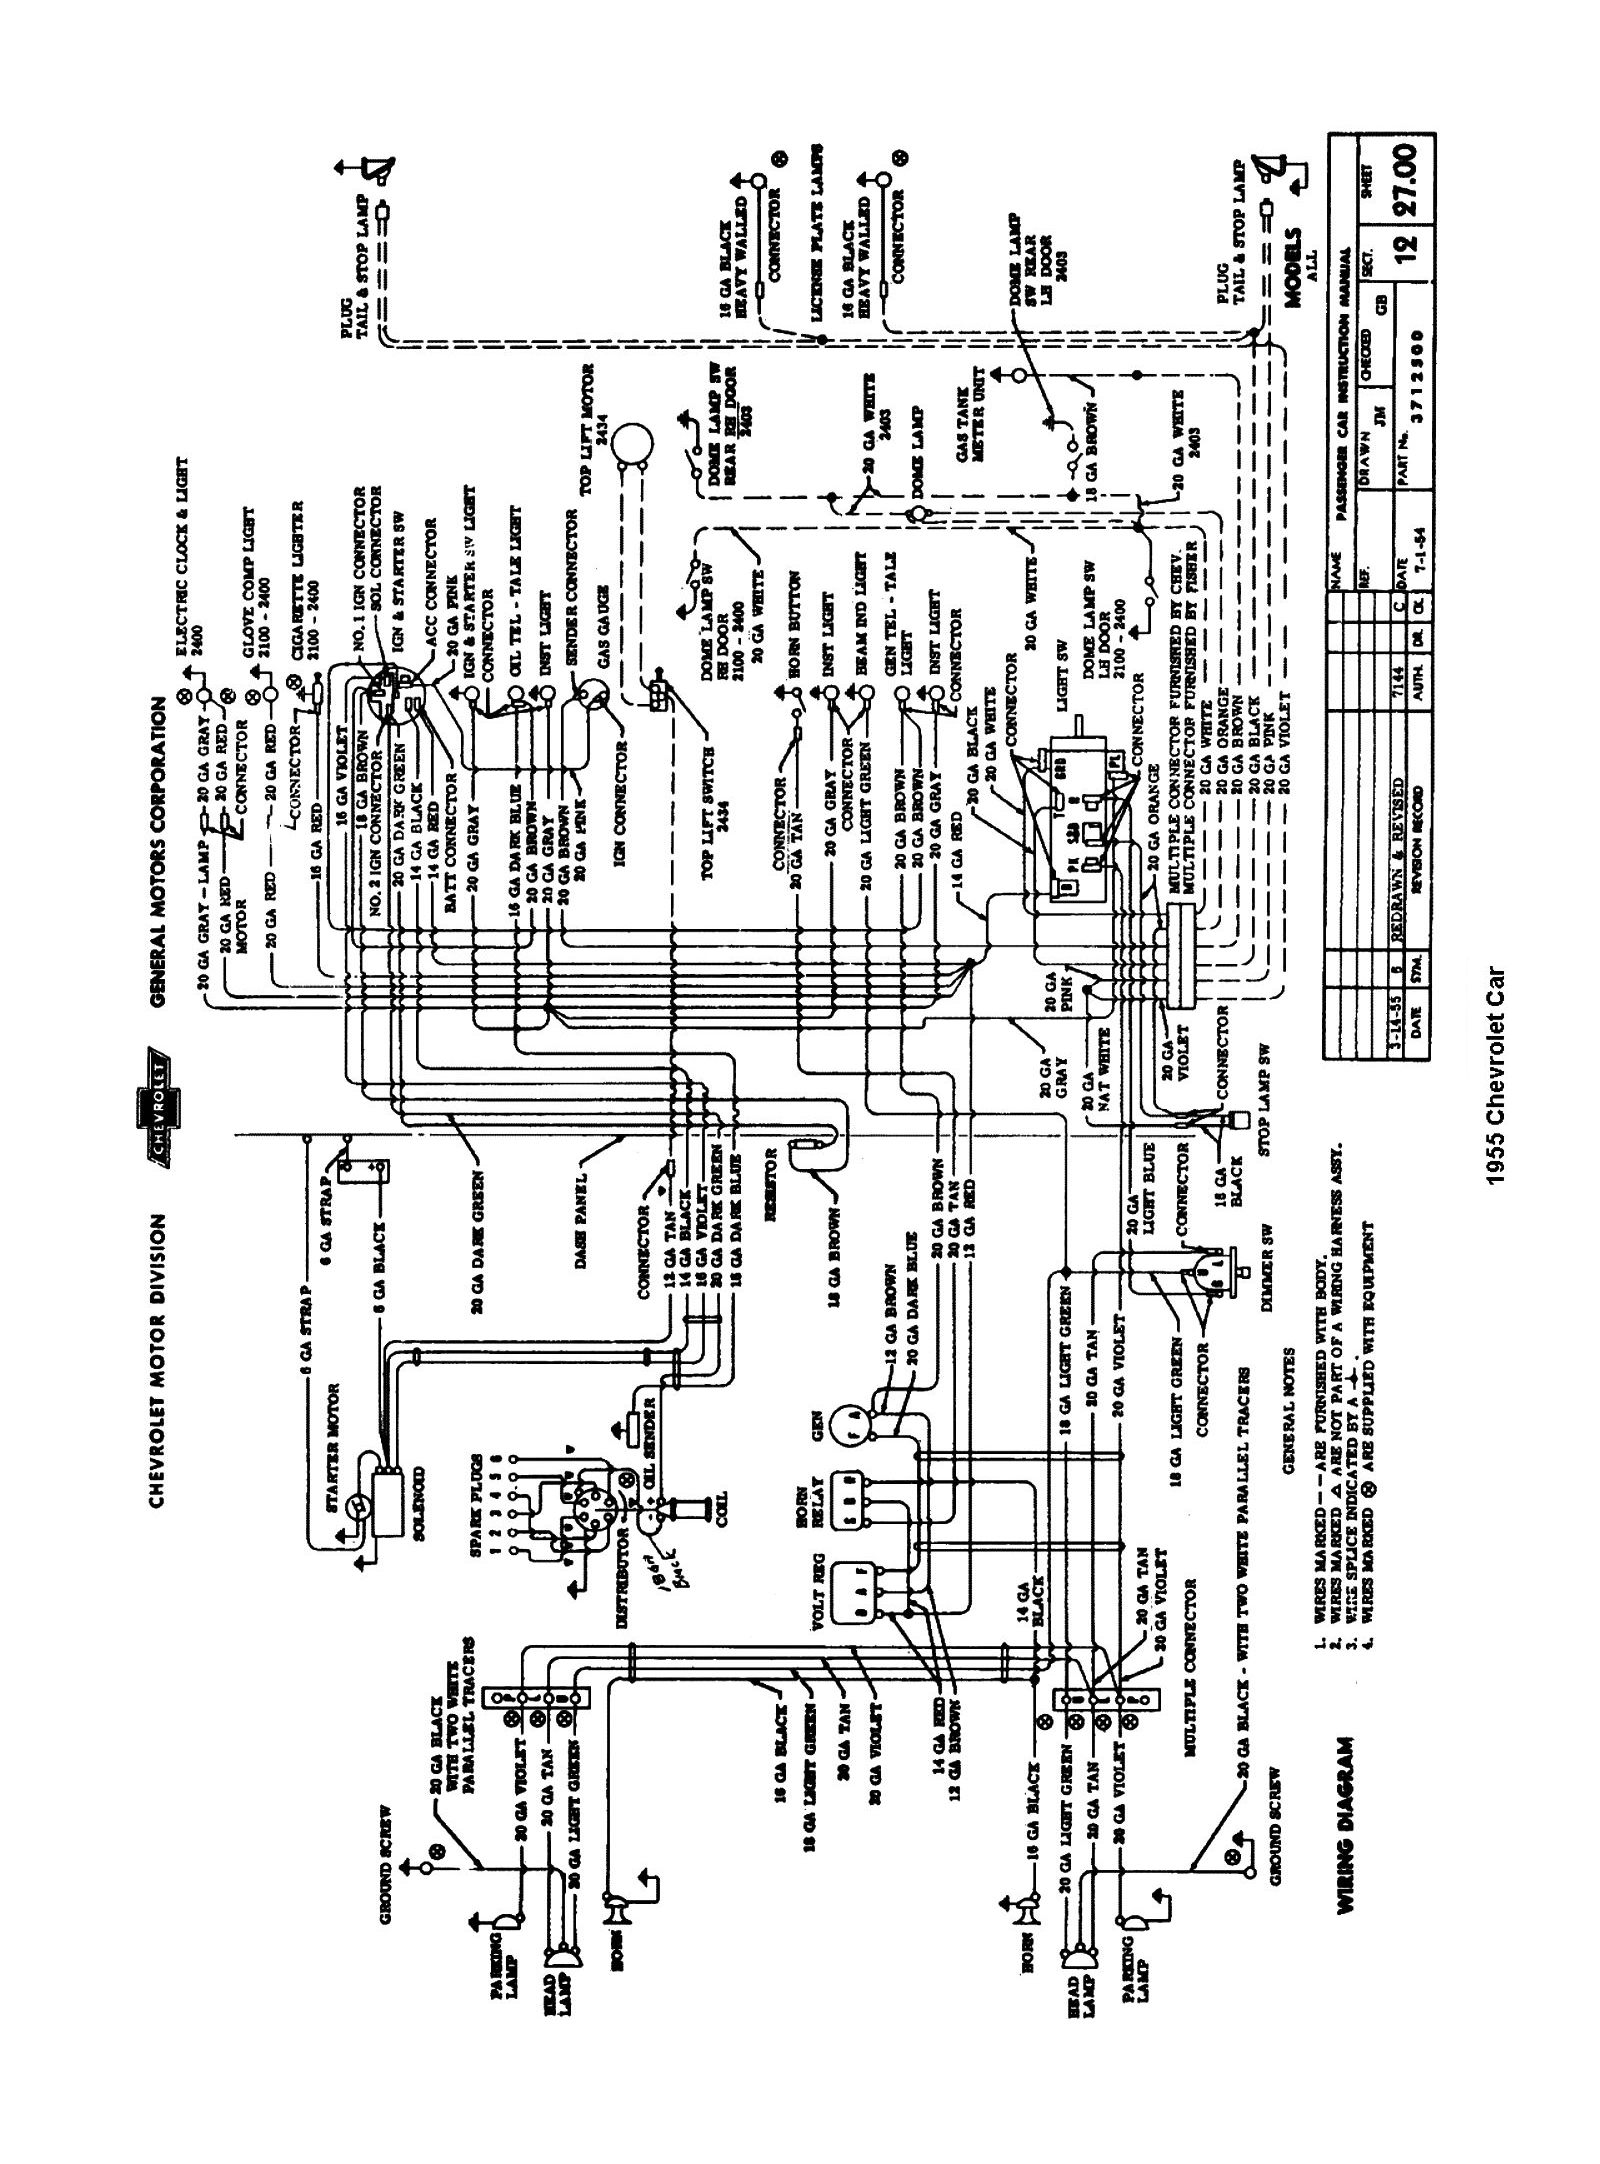 wiring diagram 1953 plymouth wiring diagram1953 1953 car wiring 1953 truck wiring diagram data schemawiring diagram 1953 plymouth just wiring diagram